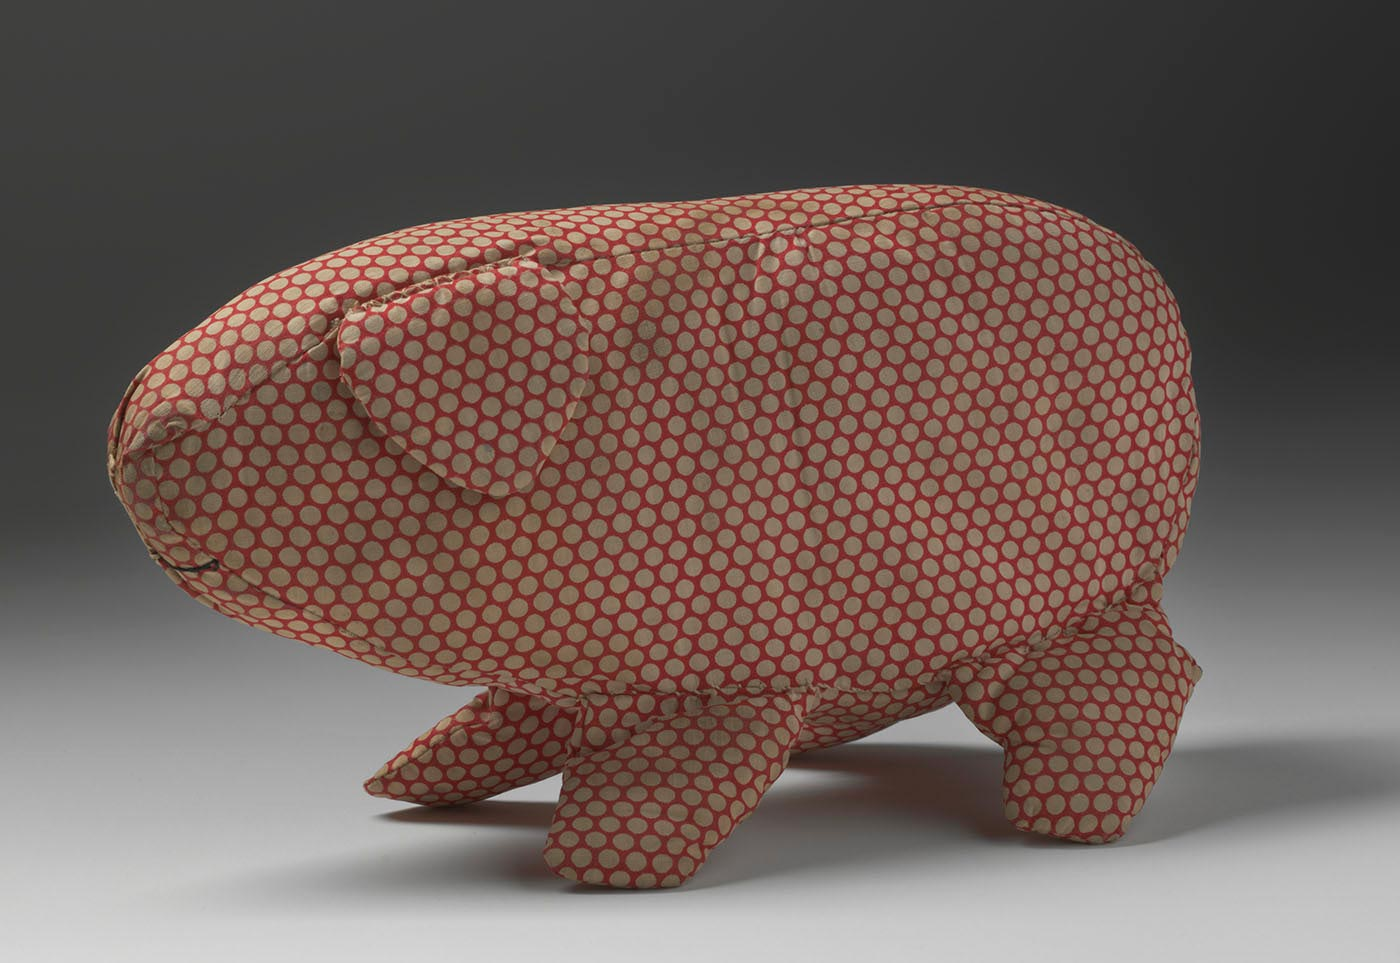 A soft toy in the shape of a pig made from off-white spotted red cotton fabric. The pig has a triangular ear and is missing its tail. A curved mouth is sewn onto the fabric in black thread. - click to view larger image